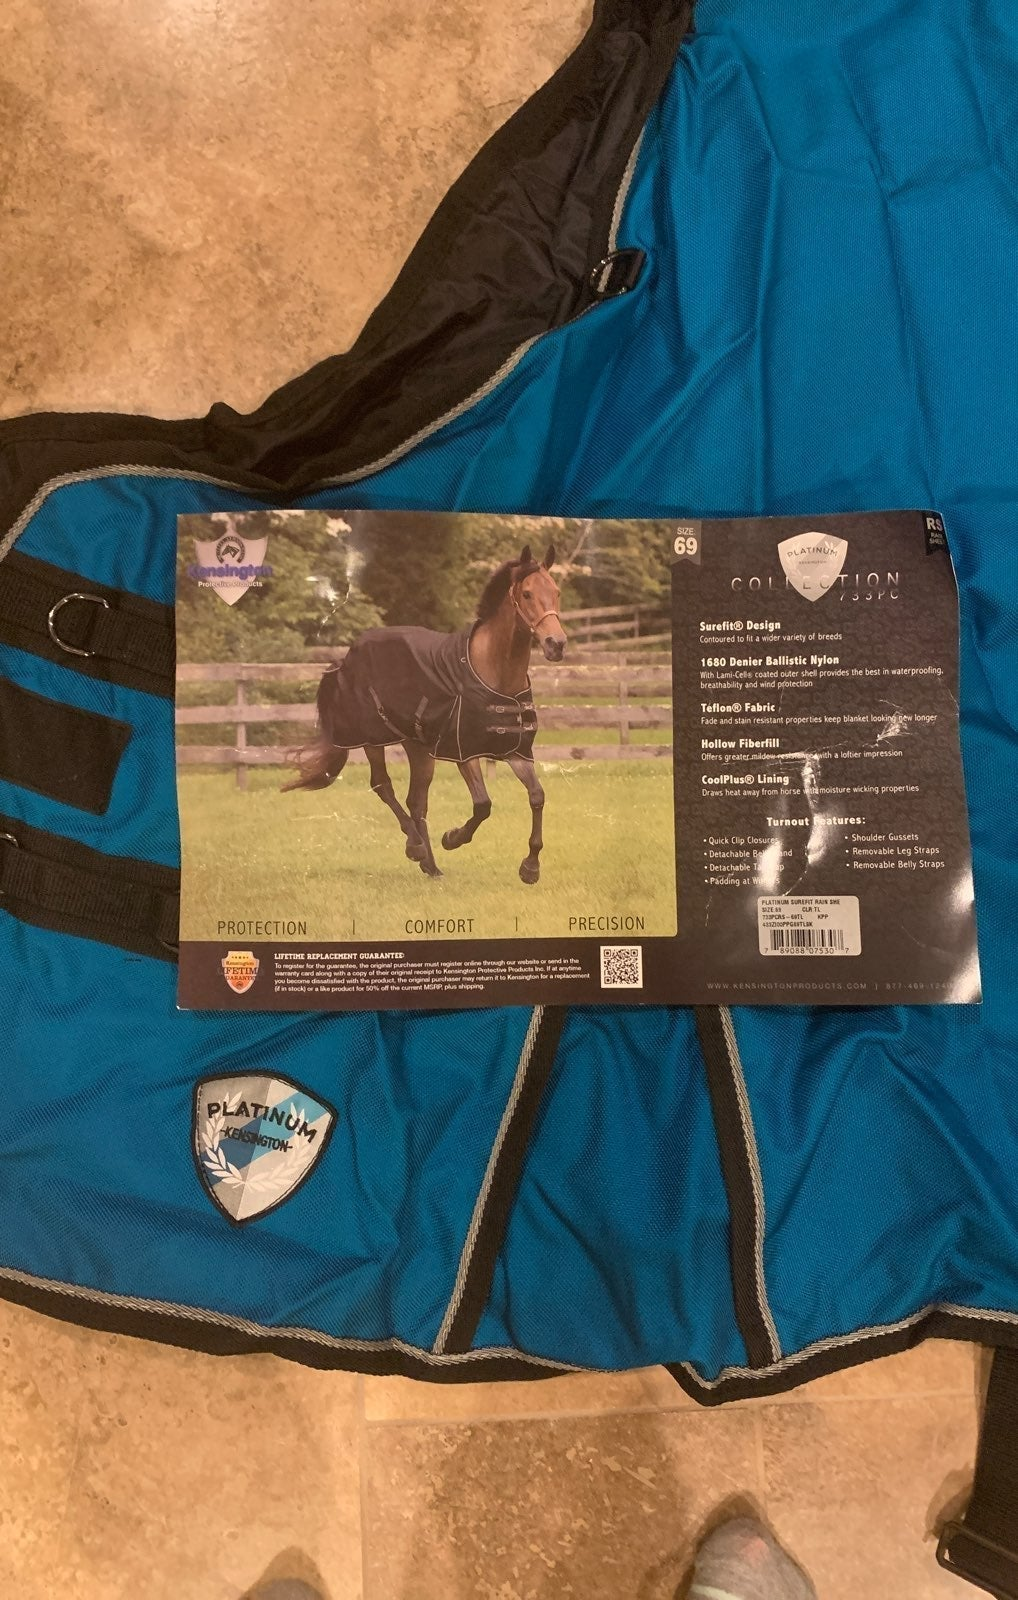 kensington platinum horse blanket 69 NEW